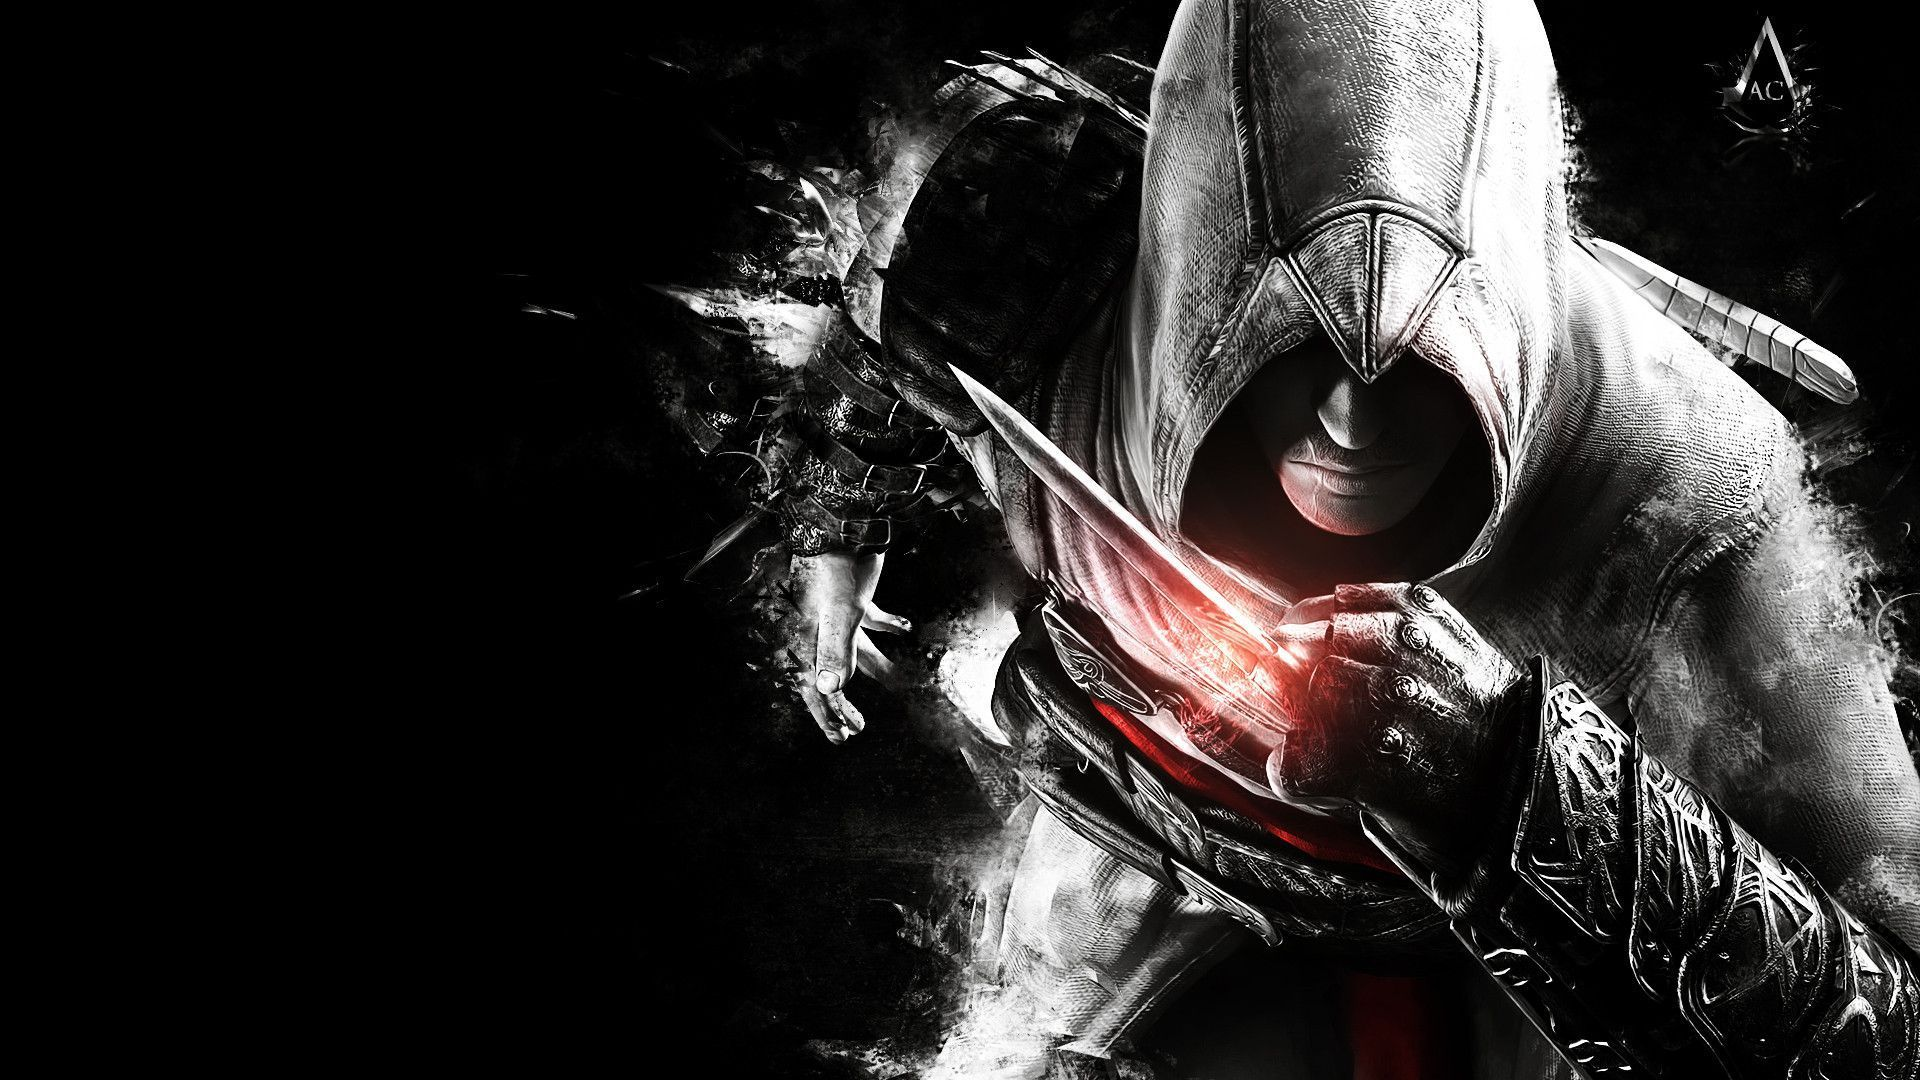 Assassins Creed Hd Wallpapers Backgrounds Wallpaper Assassins Creed Assassins Creed 3 Hintergrundbilder